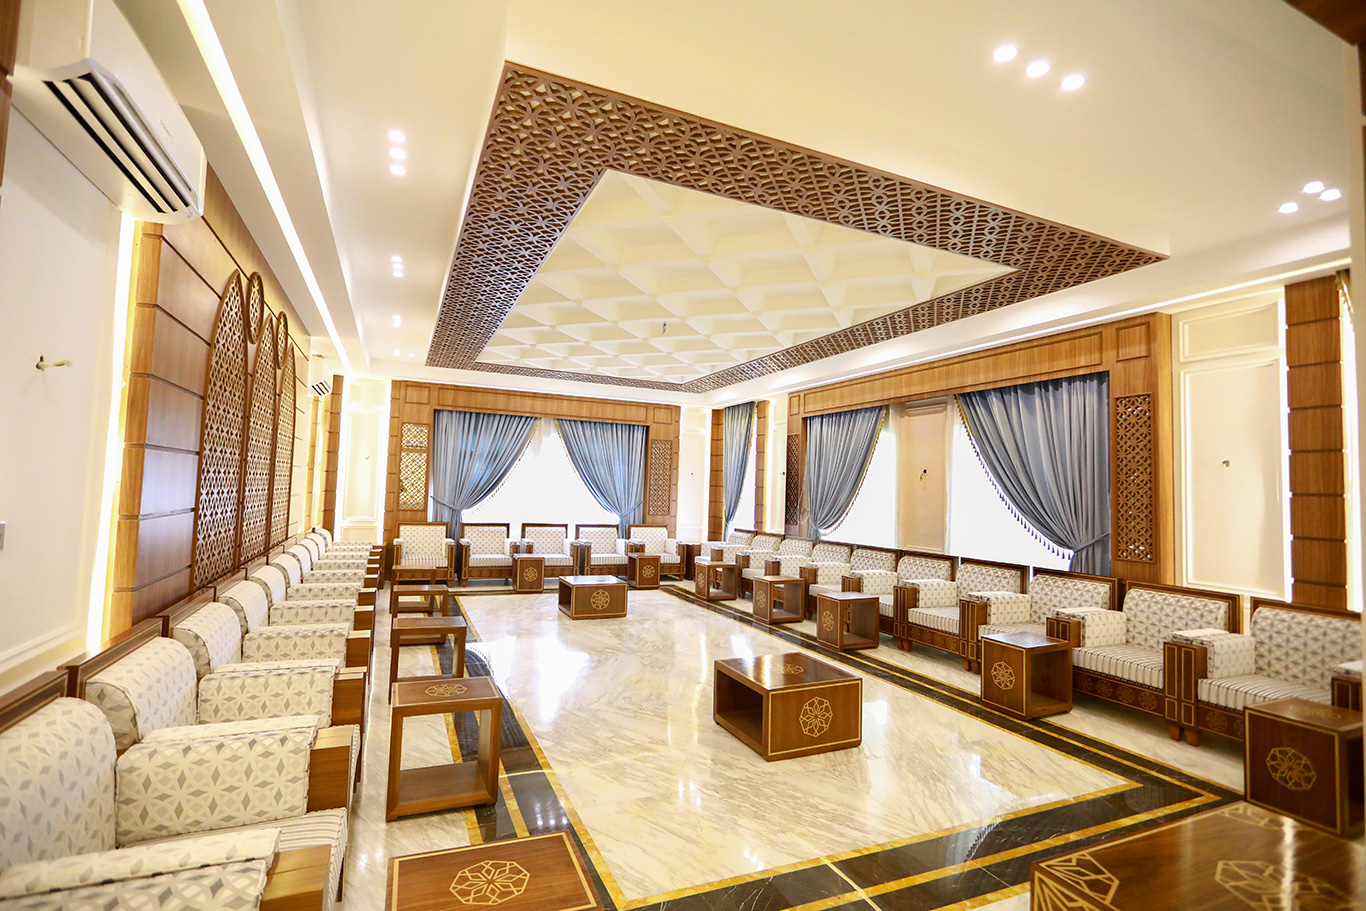 Professional Architectural Photographers in Doha Qatar